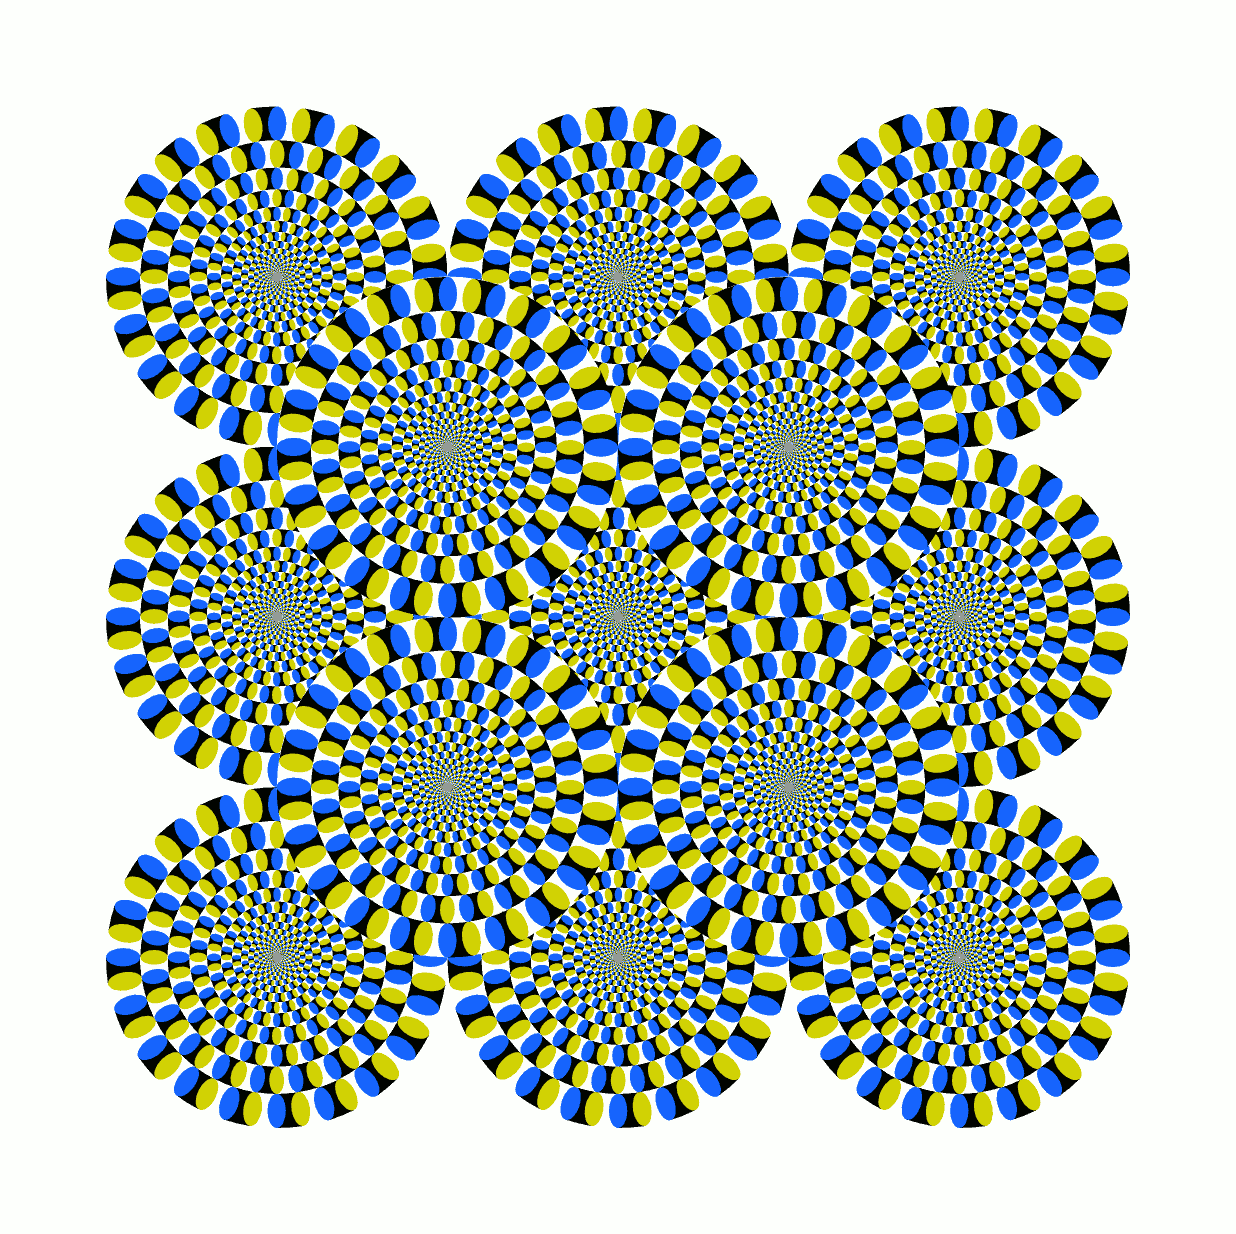 optical-illusion-circles-in-motion-preview